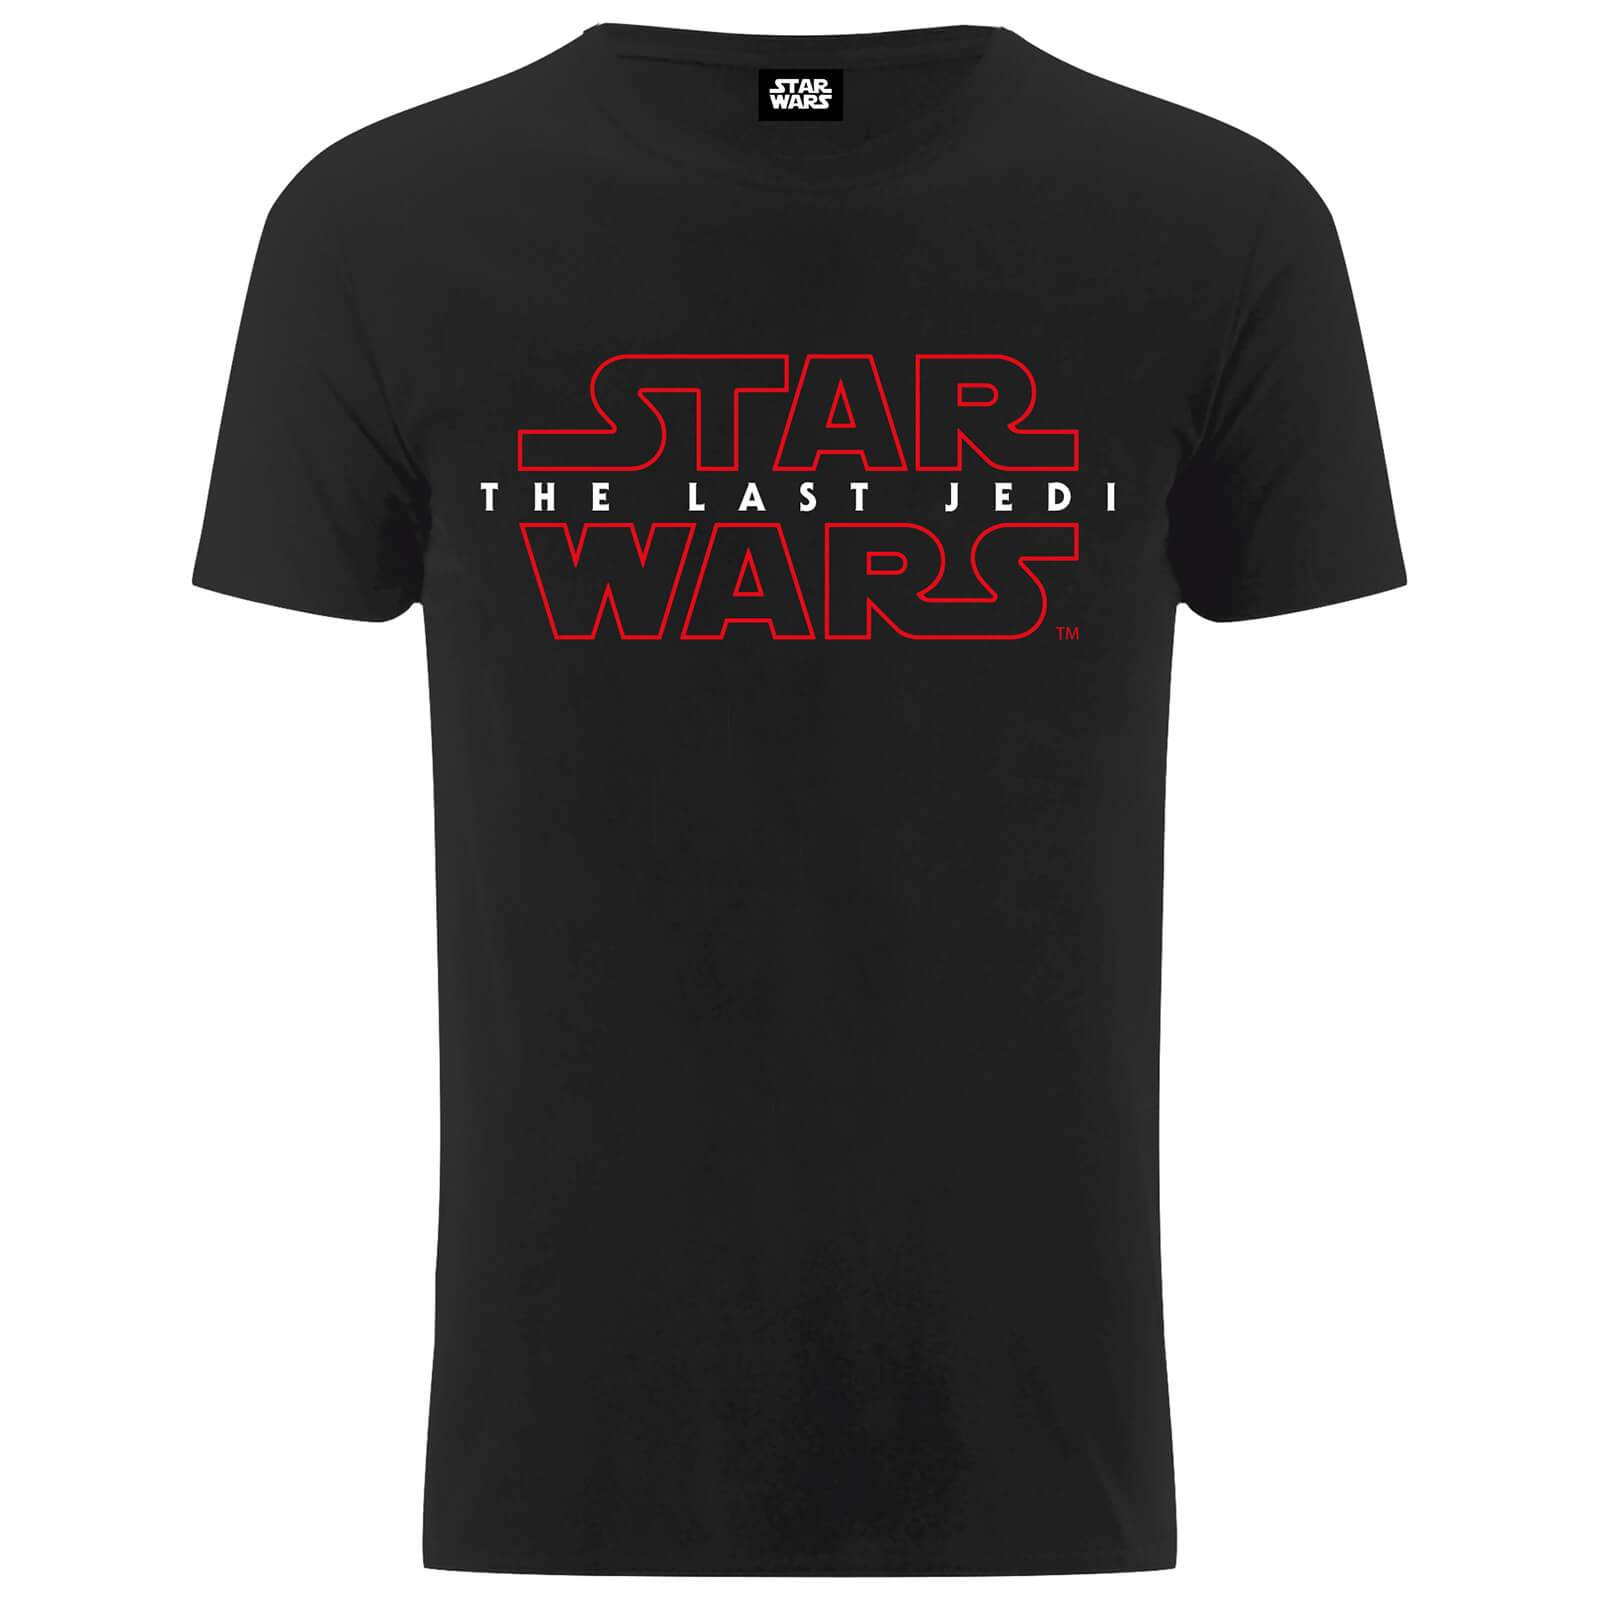 Geek Clothing Star Wars Men's The Last Jedi Stencil Logo T-Shirt - Black - M - Black